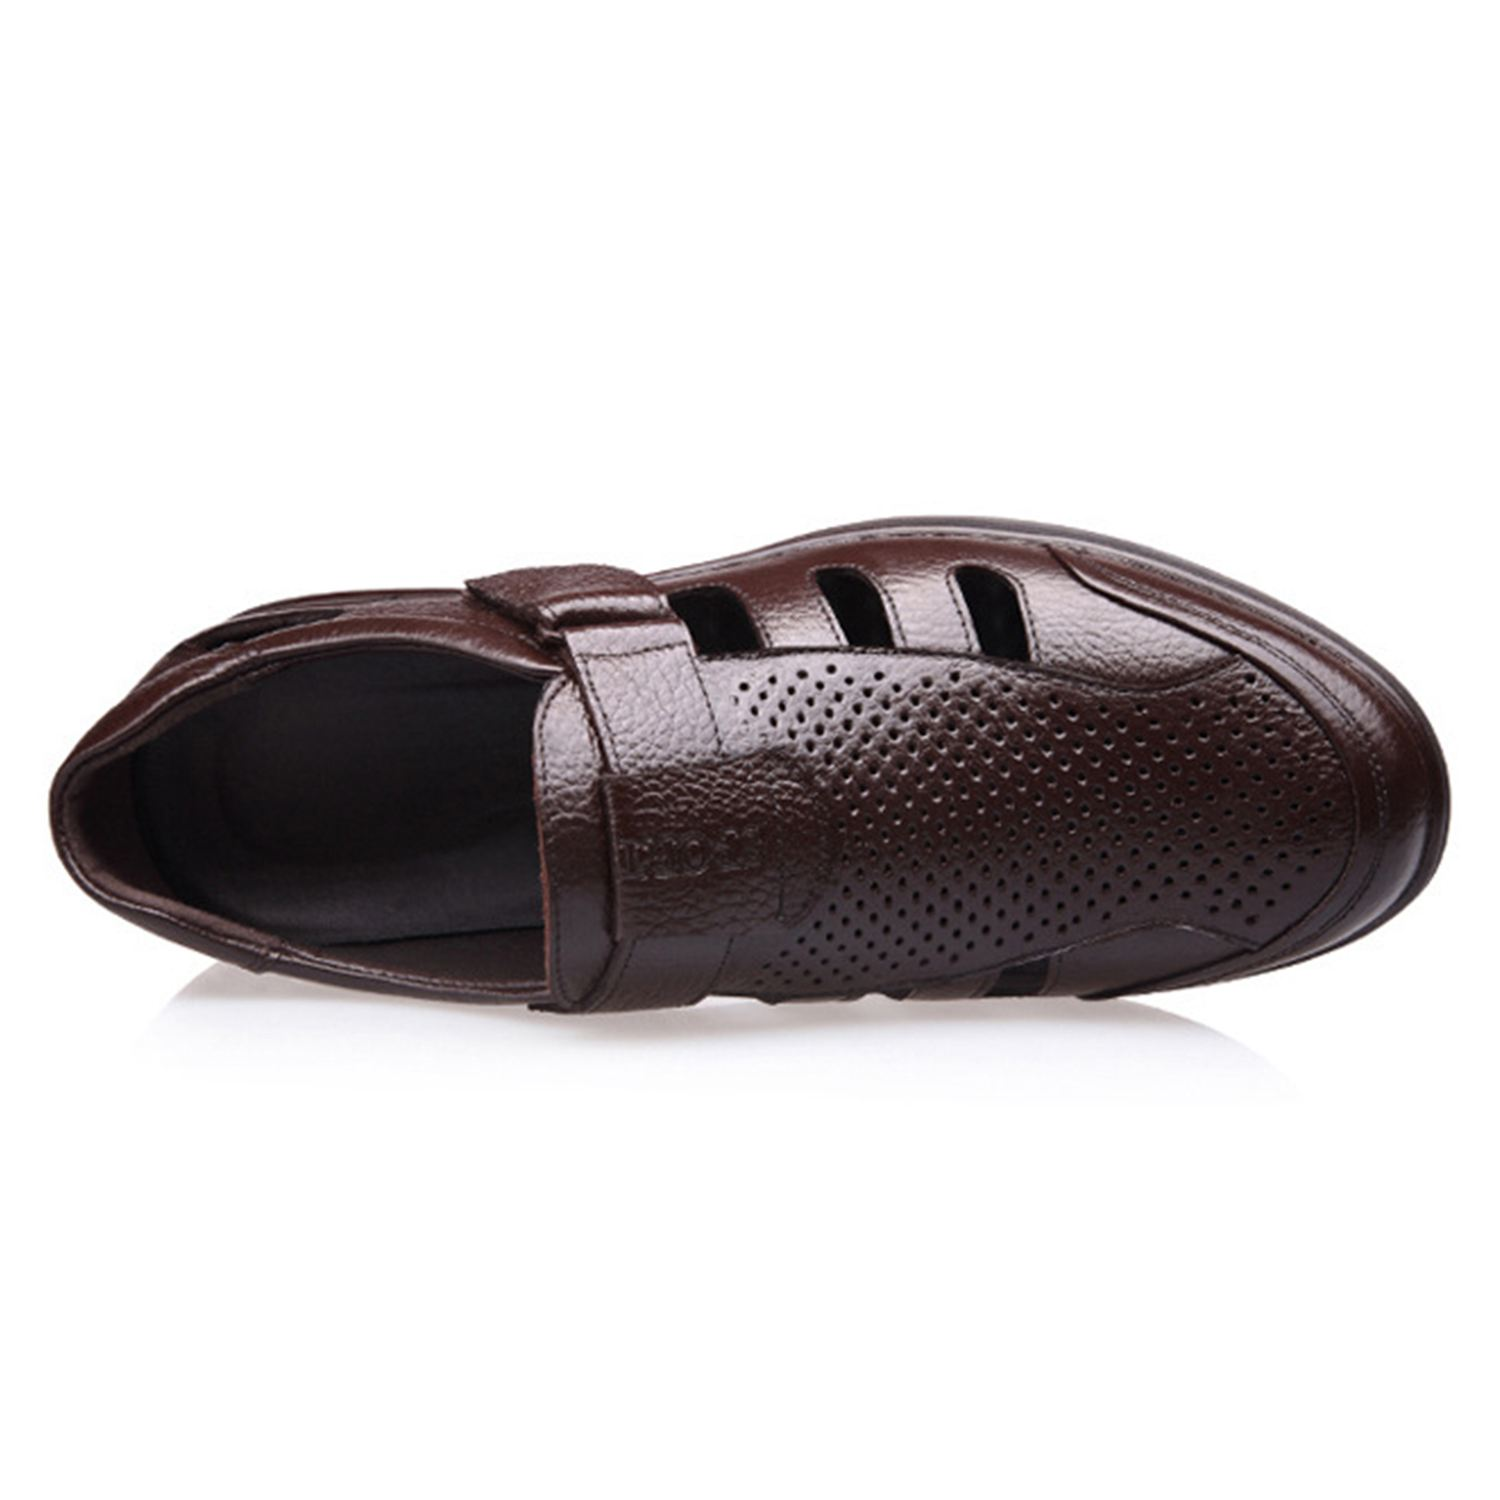 Image 4 - FGGS Genuine Leather Men Sandals Shoes Fretwork Breathable Fisherman Shoes Style Retro Gladiator Soft Bottom summer Classics m-in Men's Sandals from Shoes